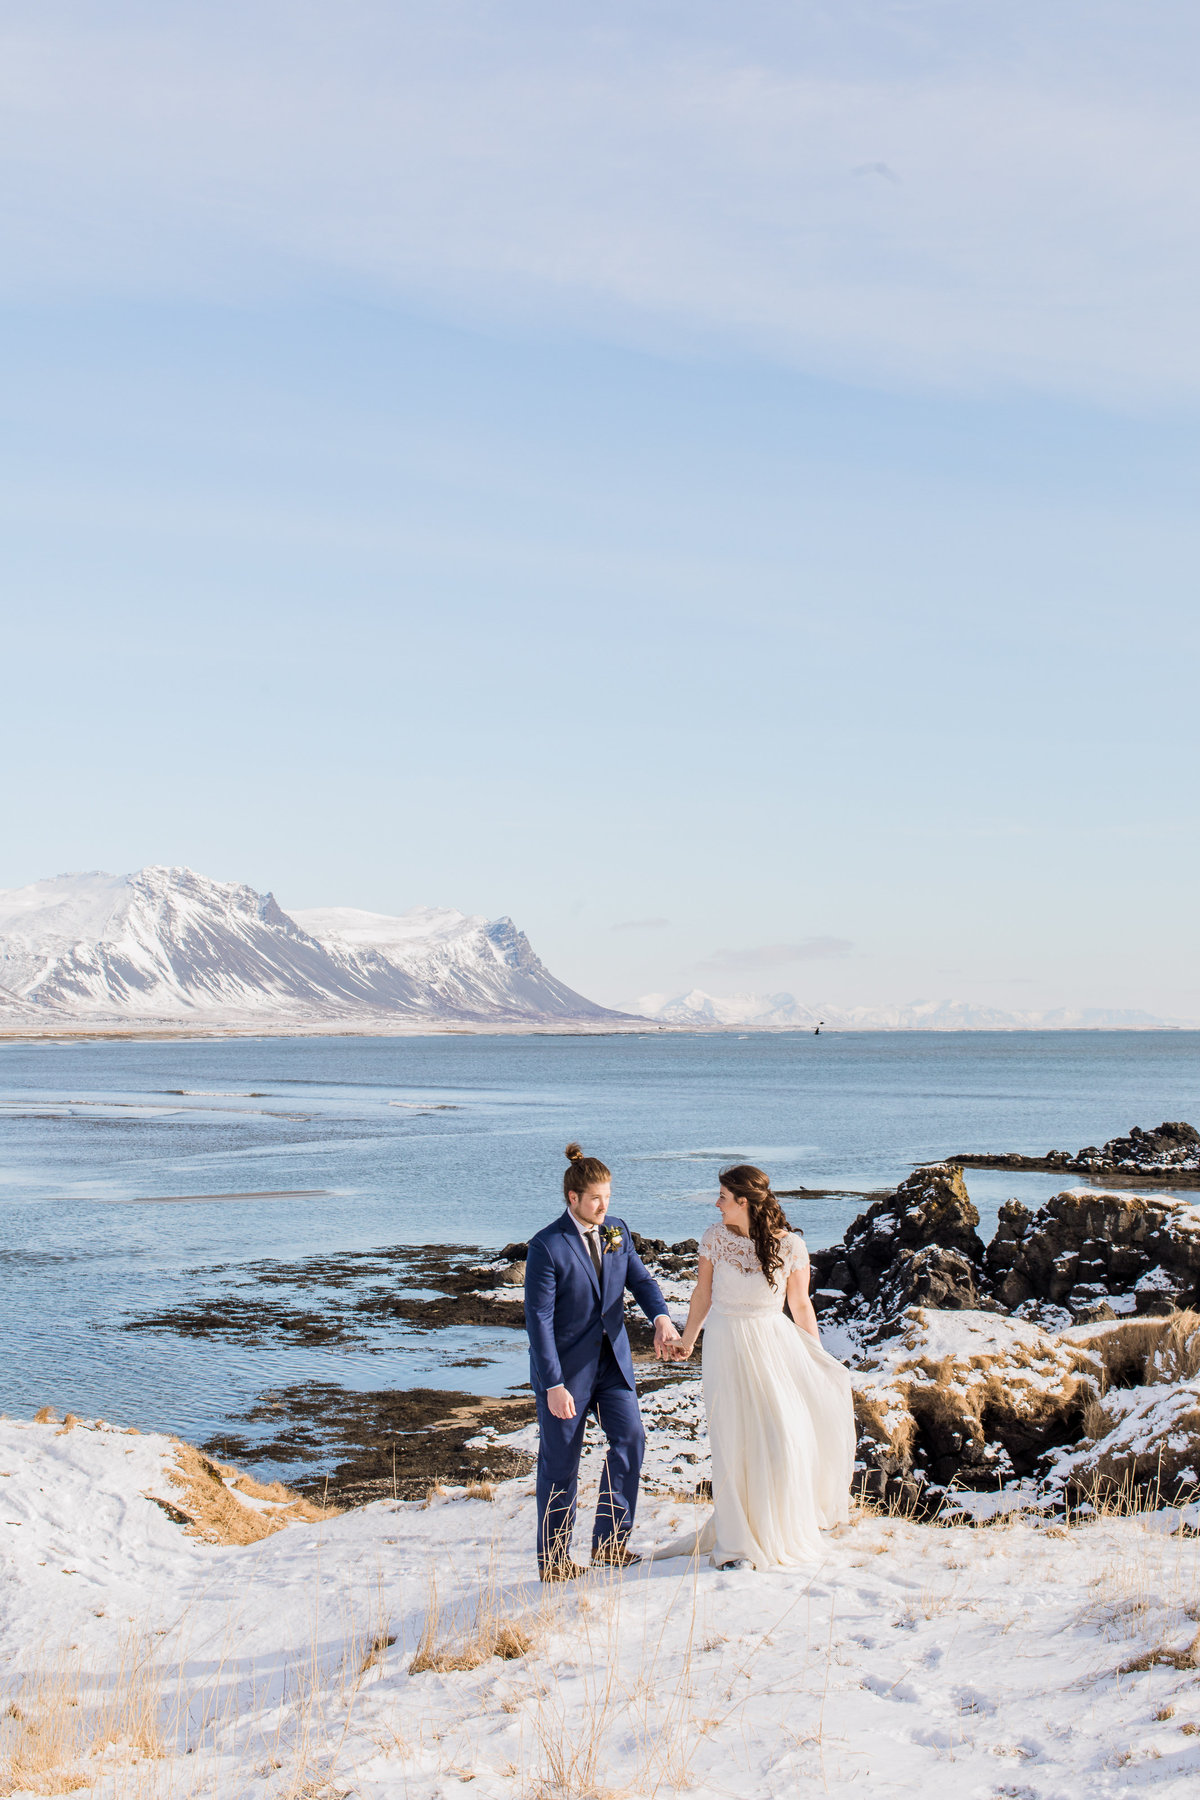 IcelandWedding_OliviaScott_CatherineRhodesPhotography-643-Edit